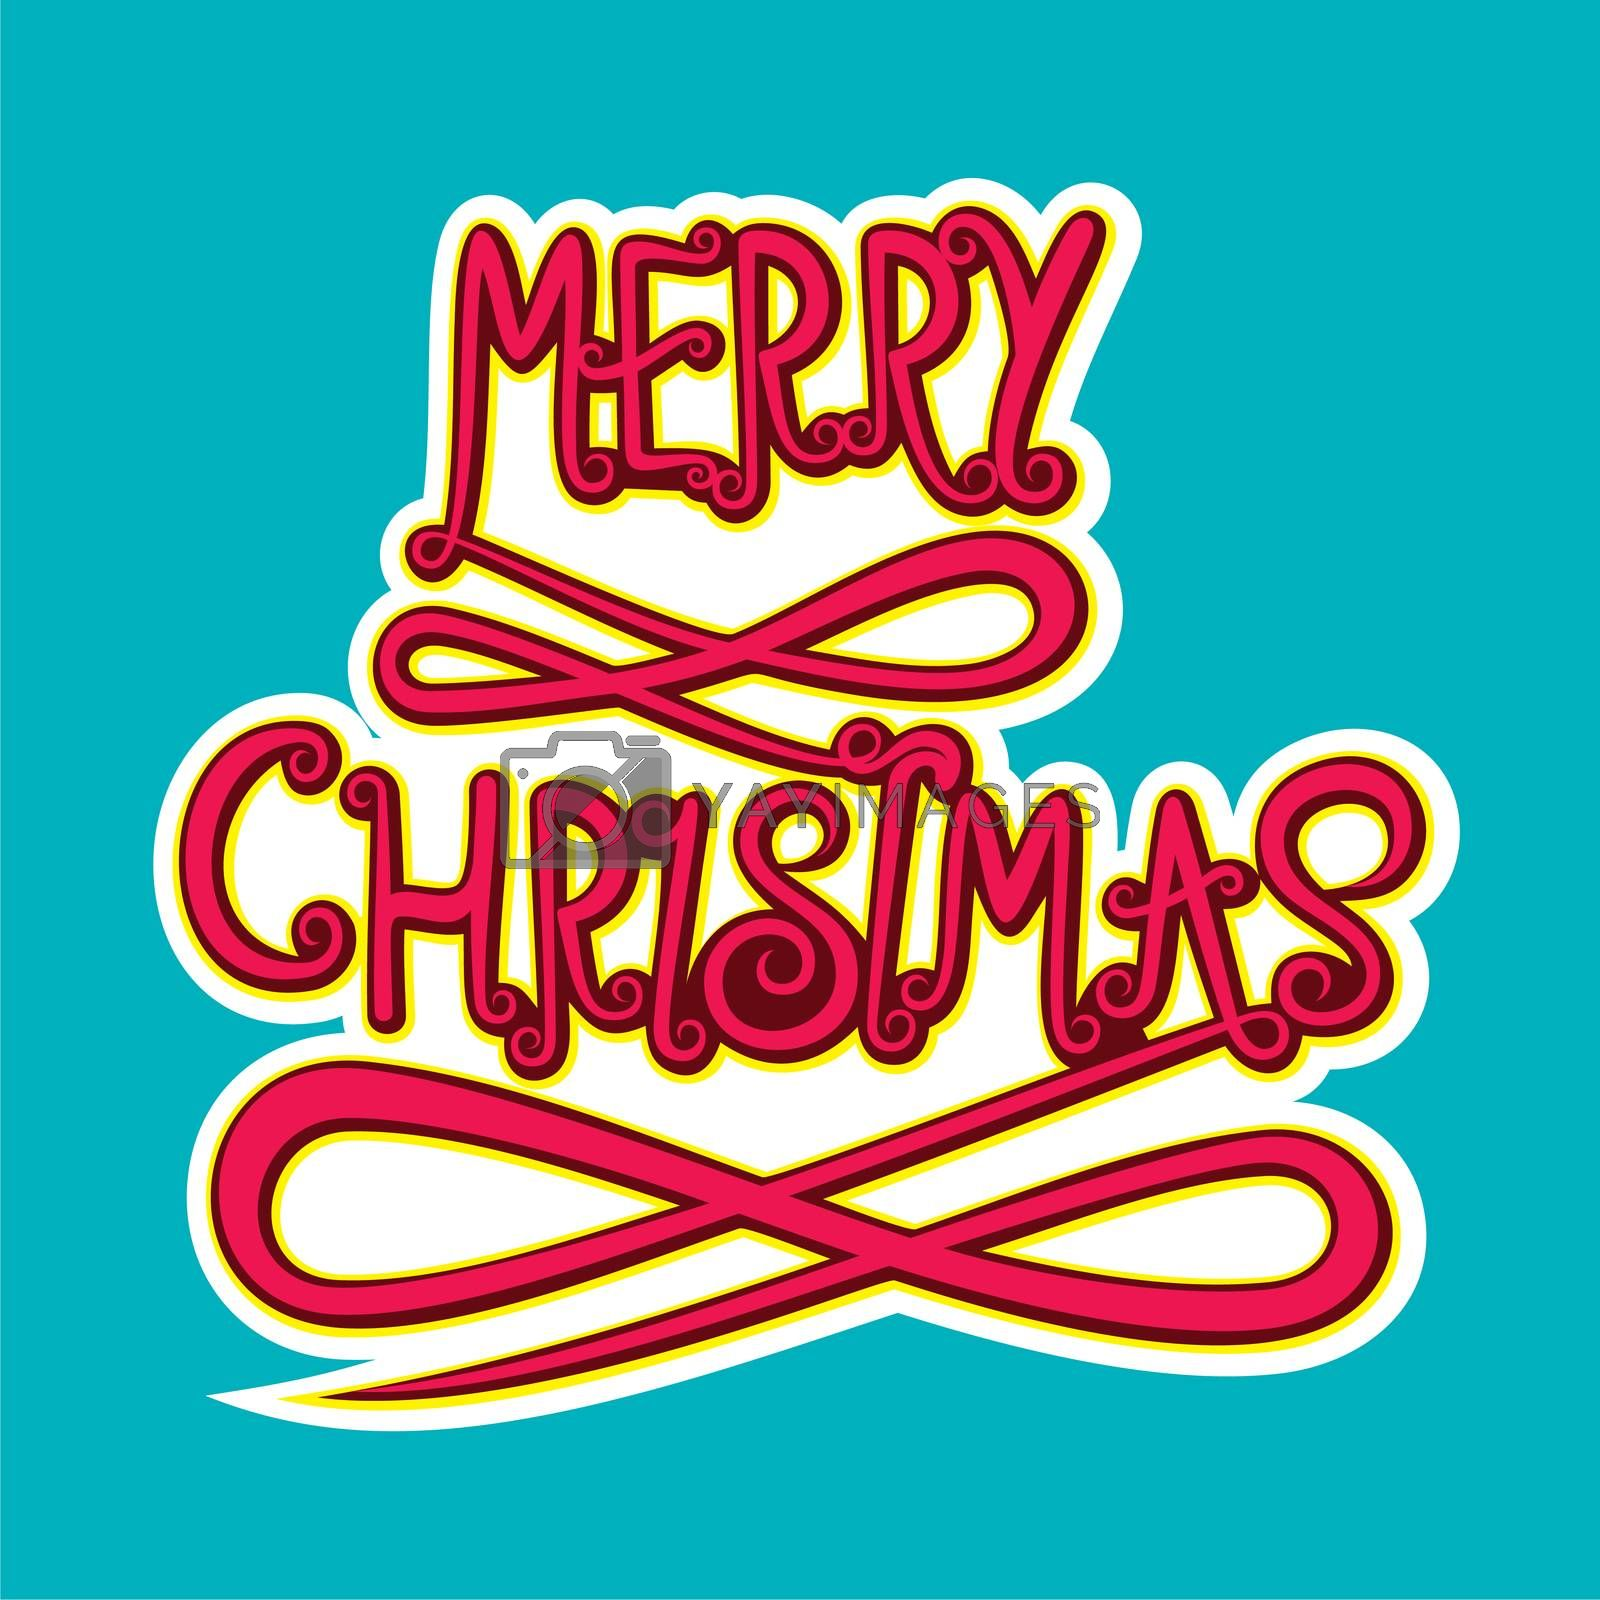 abstract merry christmas typography poster design vector